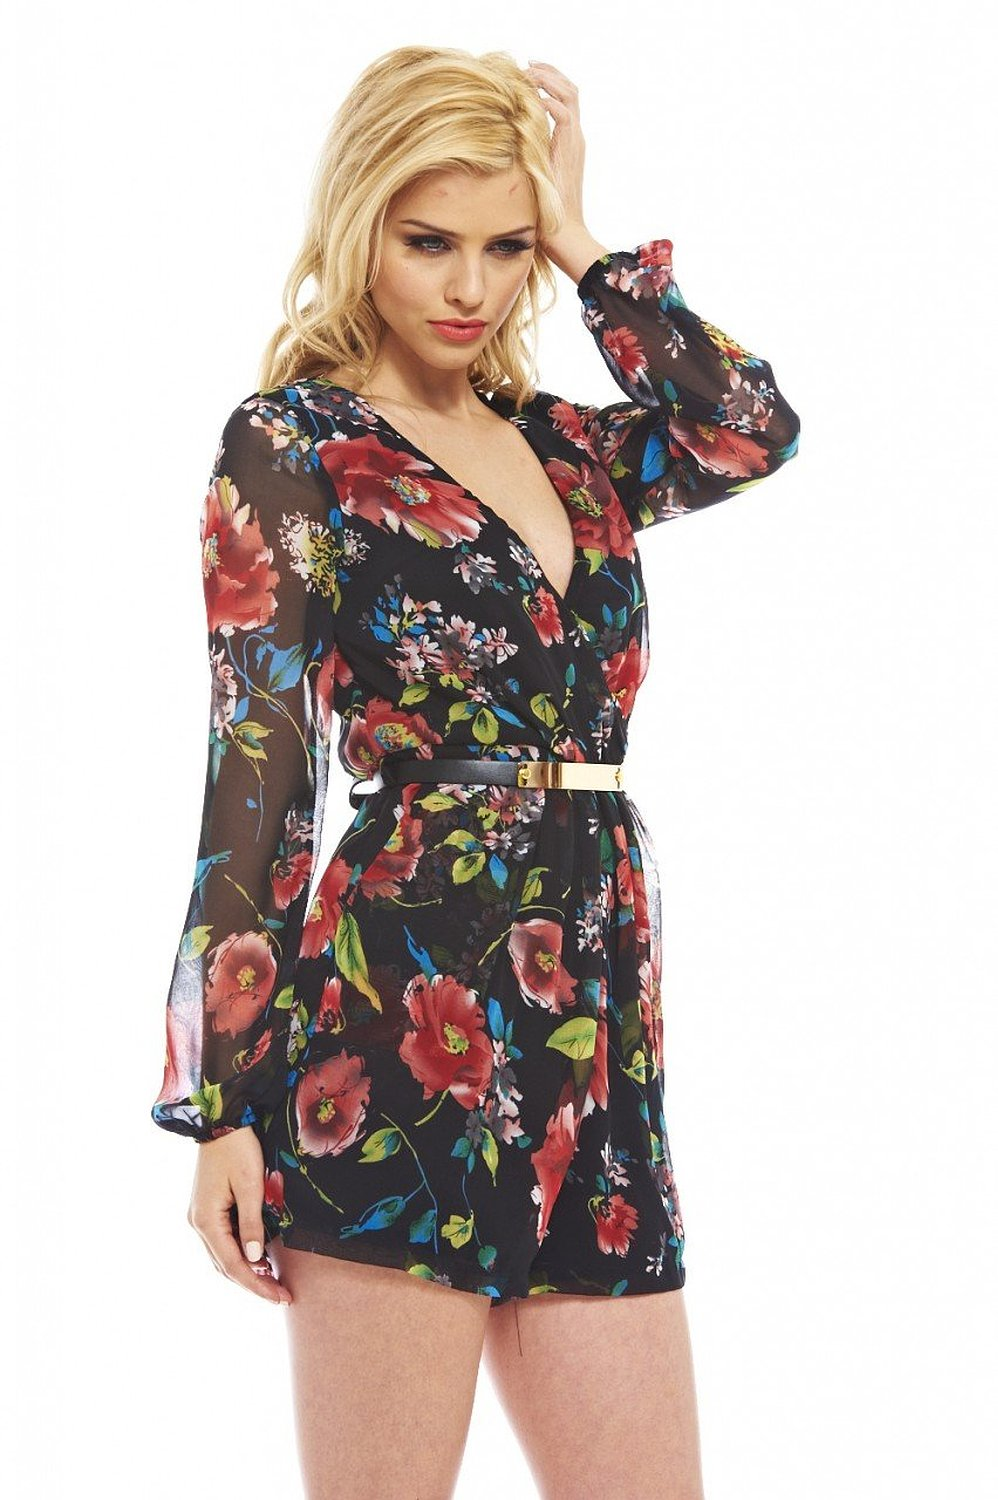 Amazon.com: AX Paris Women's Floral Wrap Front Chiffon Romper: Clothing